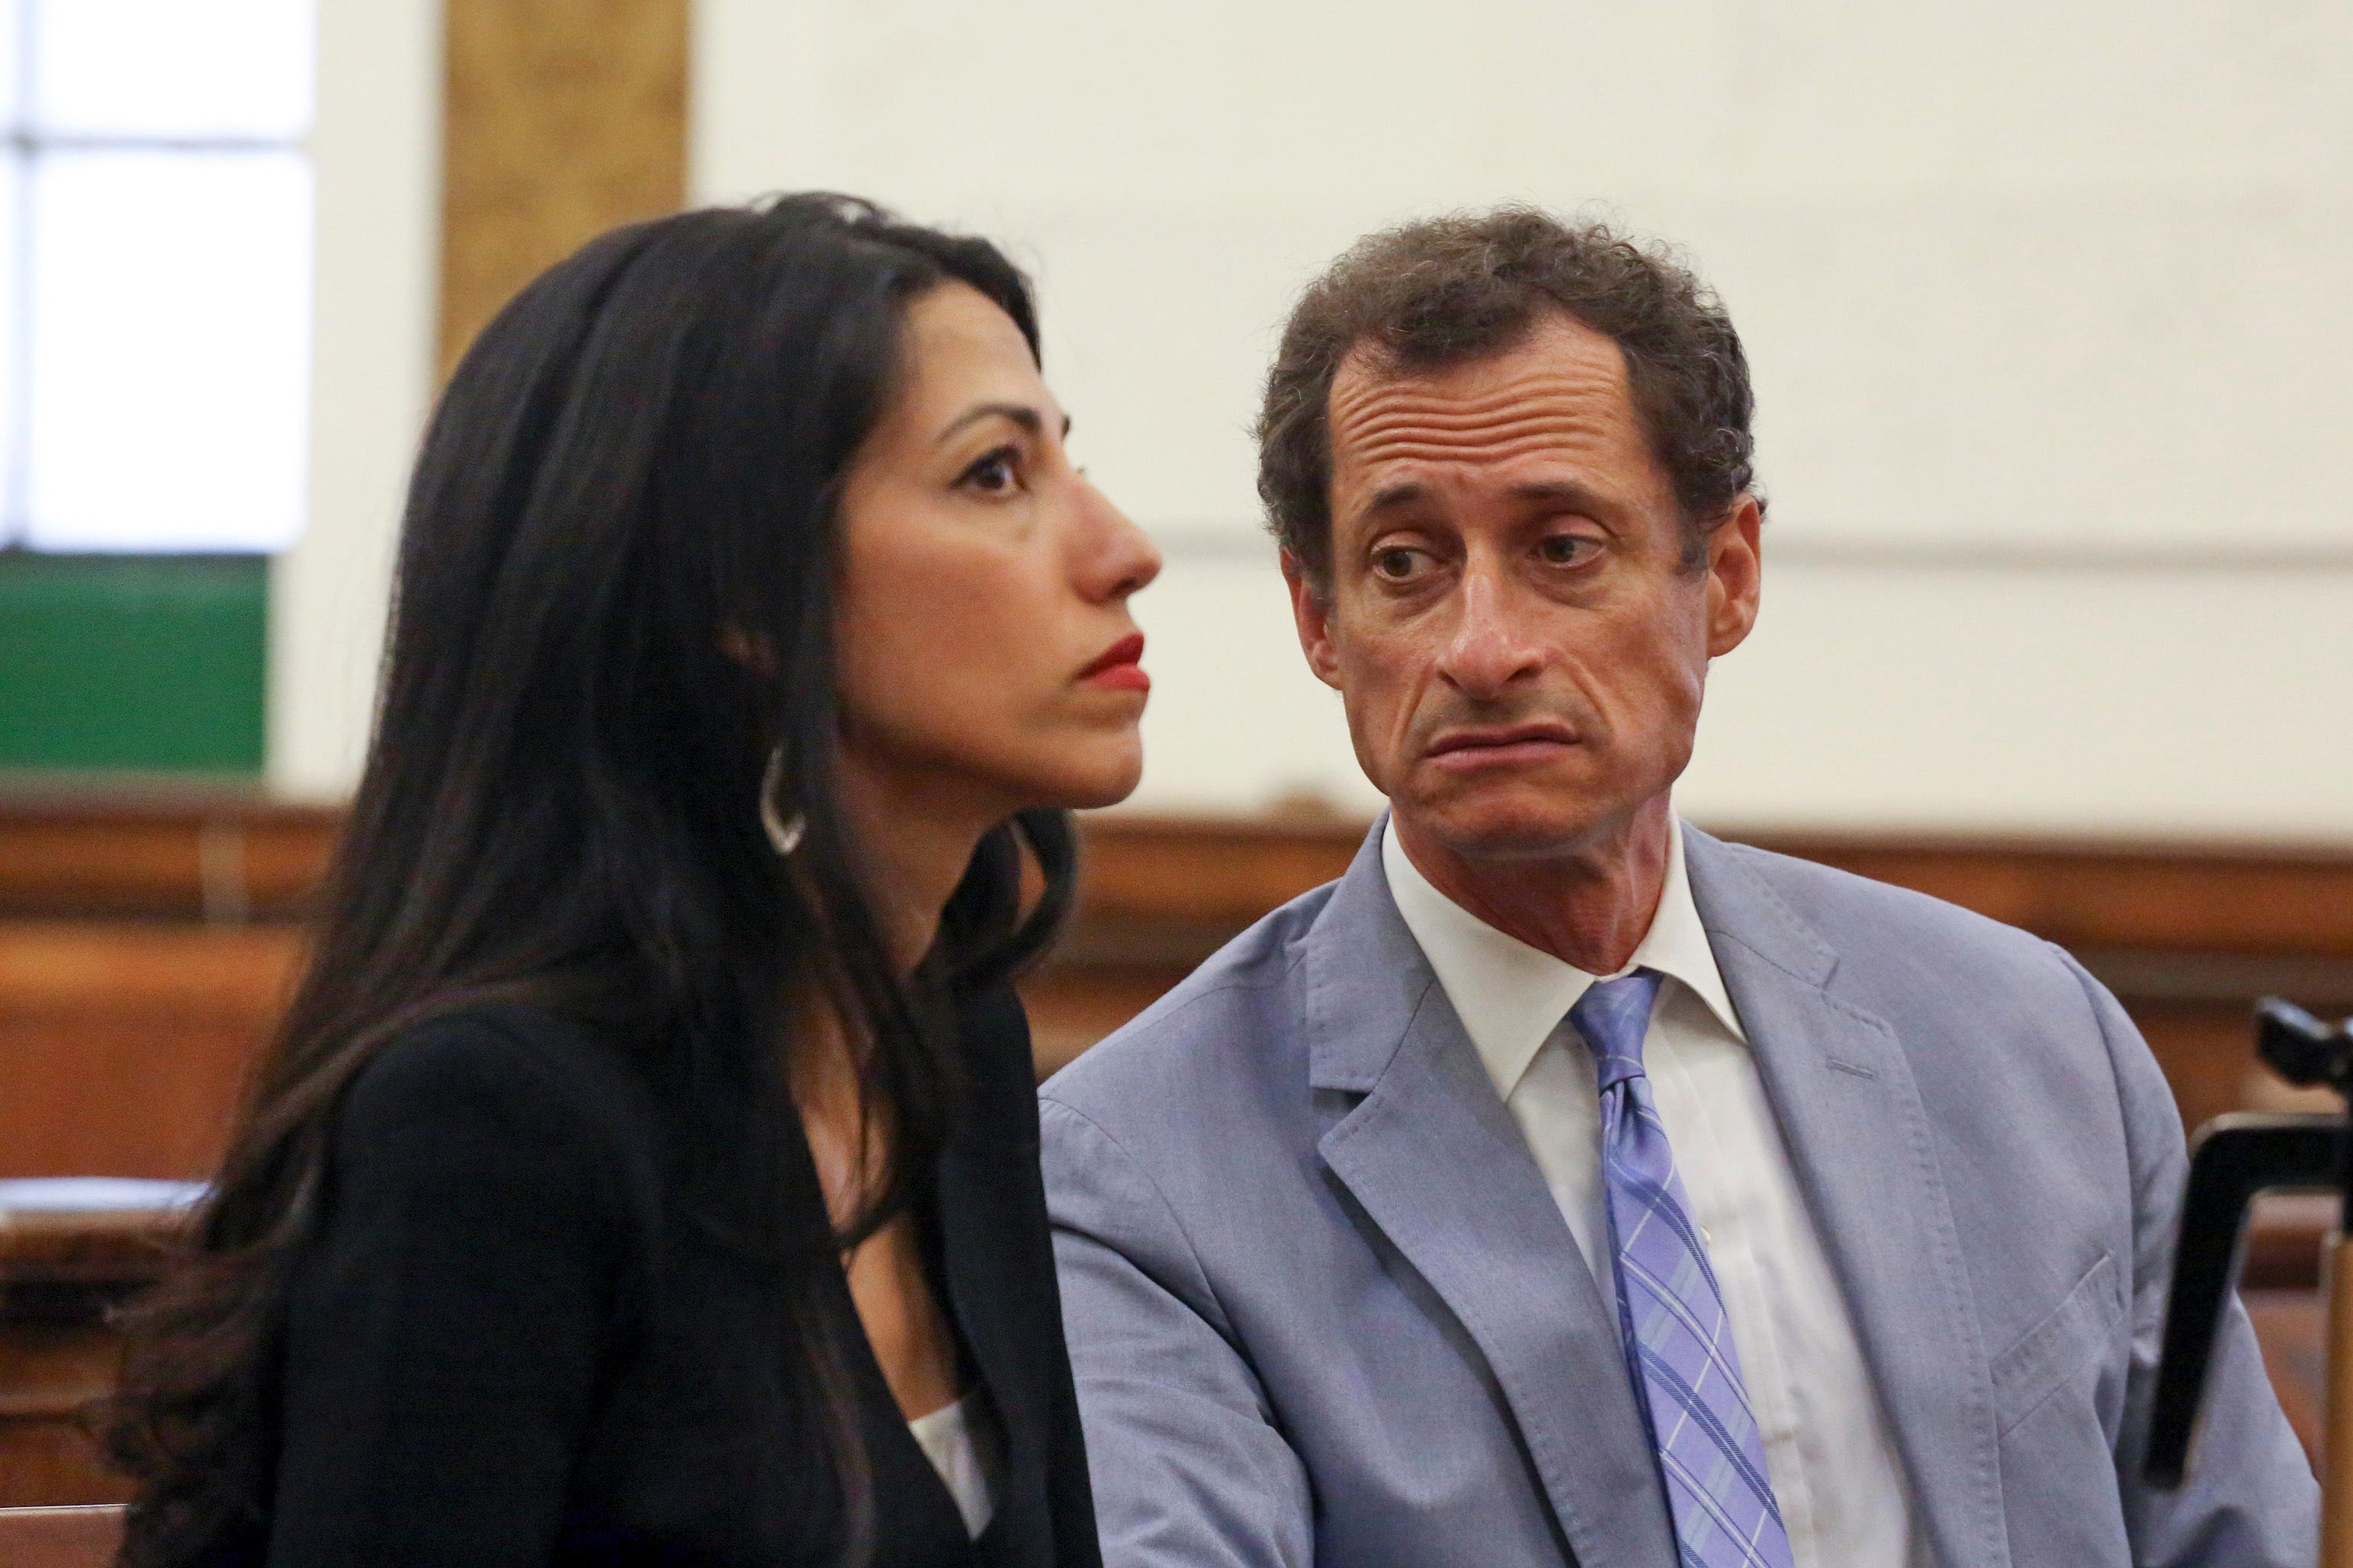 Anthony Weiner, right, and Huma Abedin appear in court in New York on Wednesday, Sept. 13, 2017.{&amp;nbsp;} (Jefferson Siegel/The Daily News via AP, Pool)<p></p>